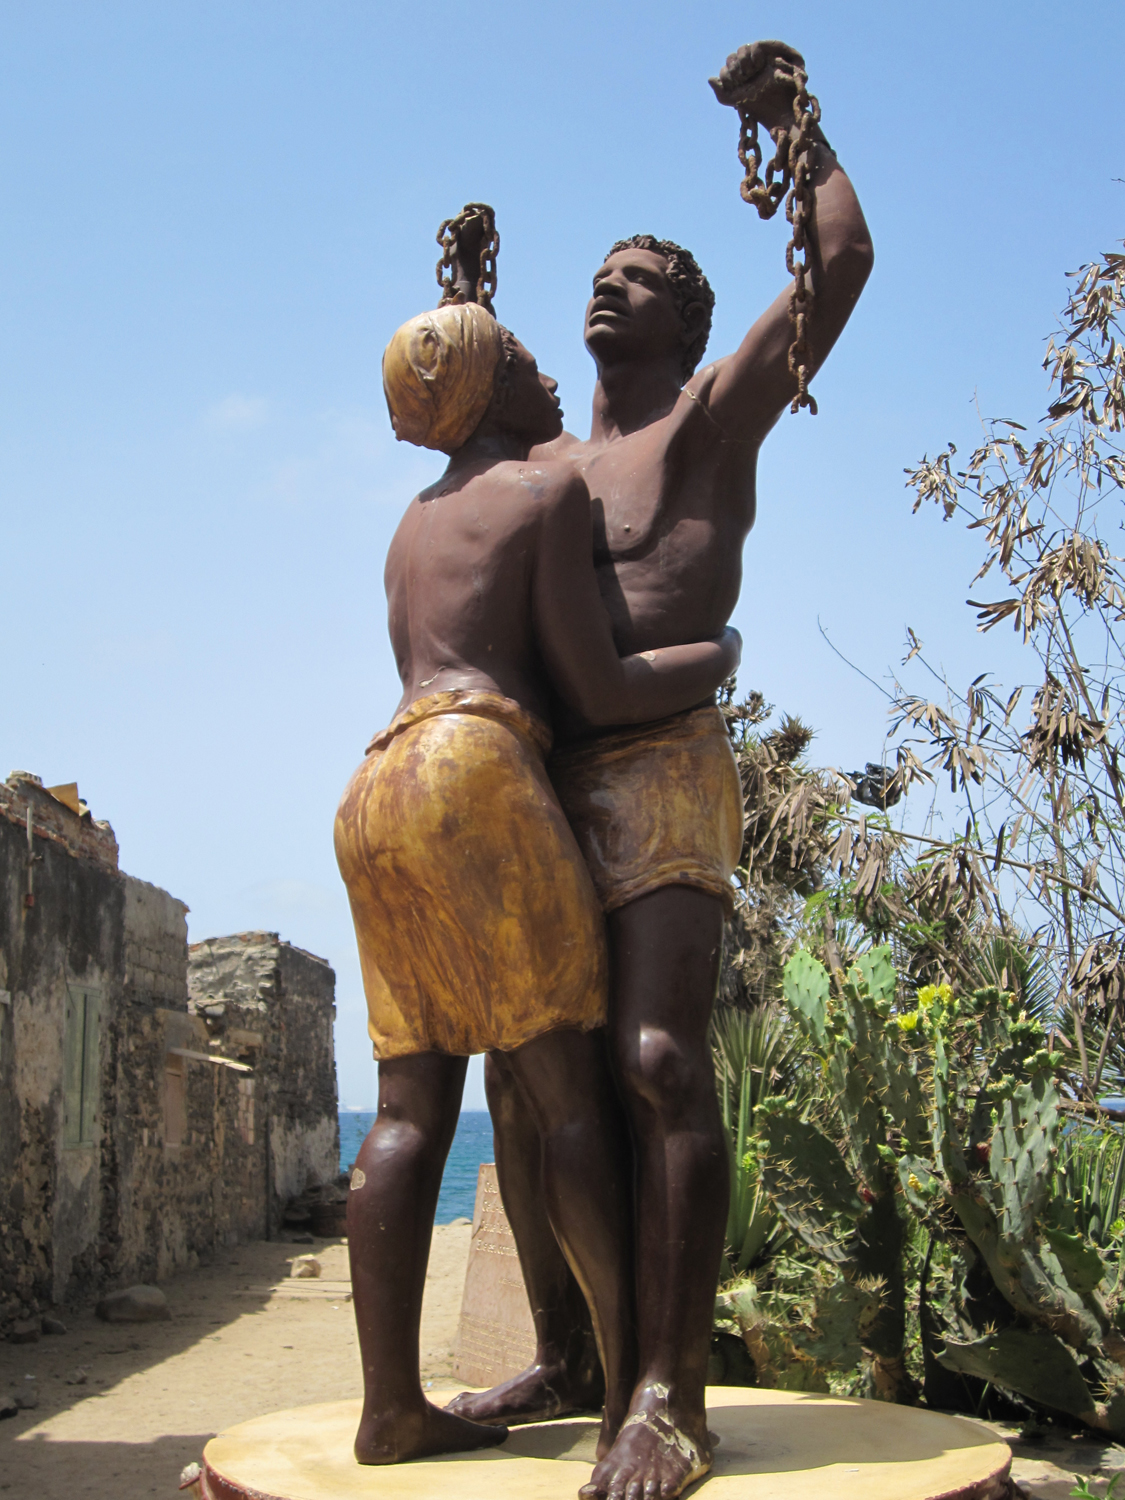 statue of slavery freedom Goree island Senegal